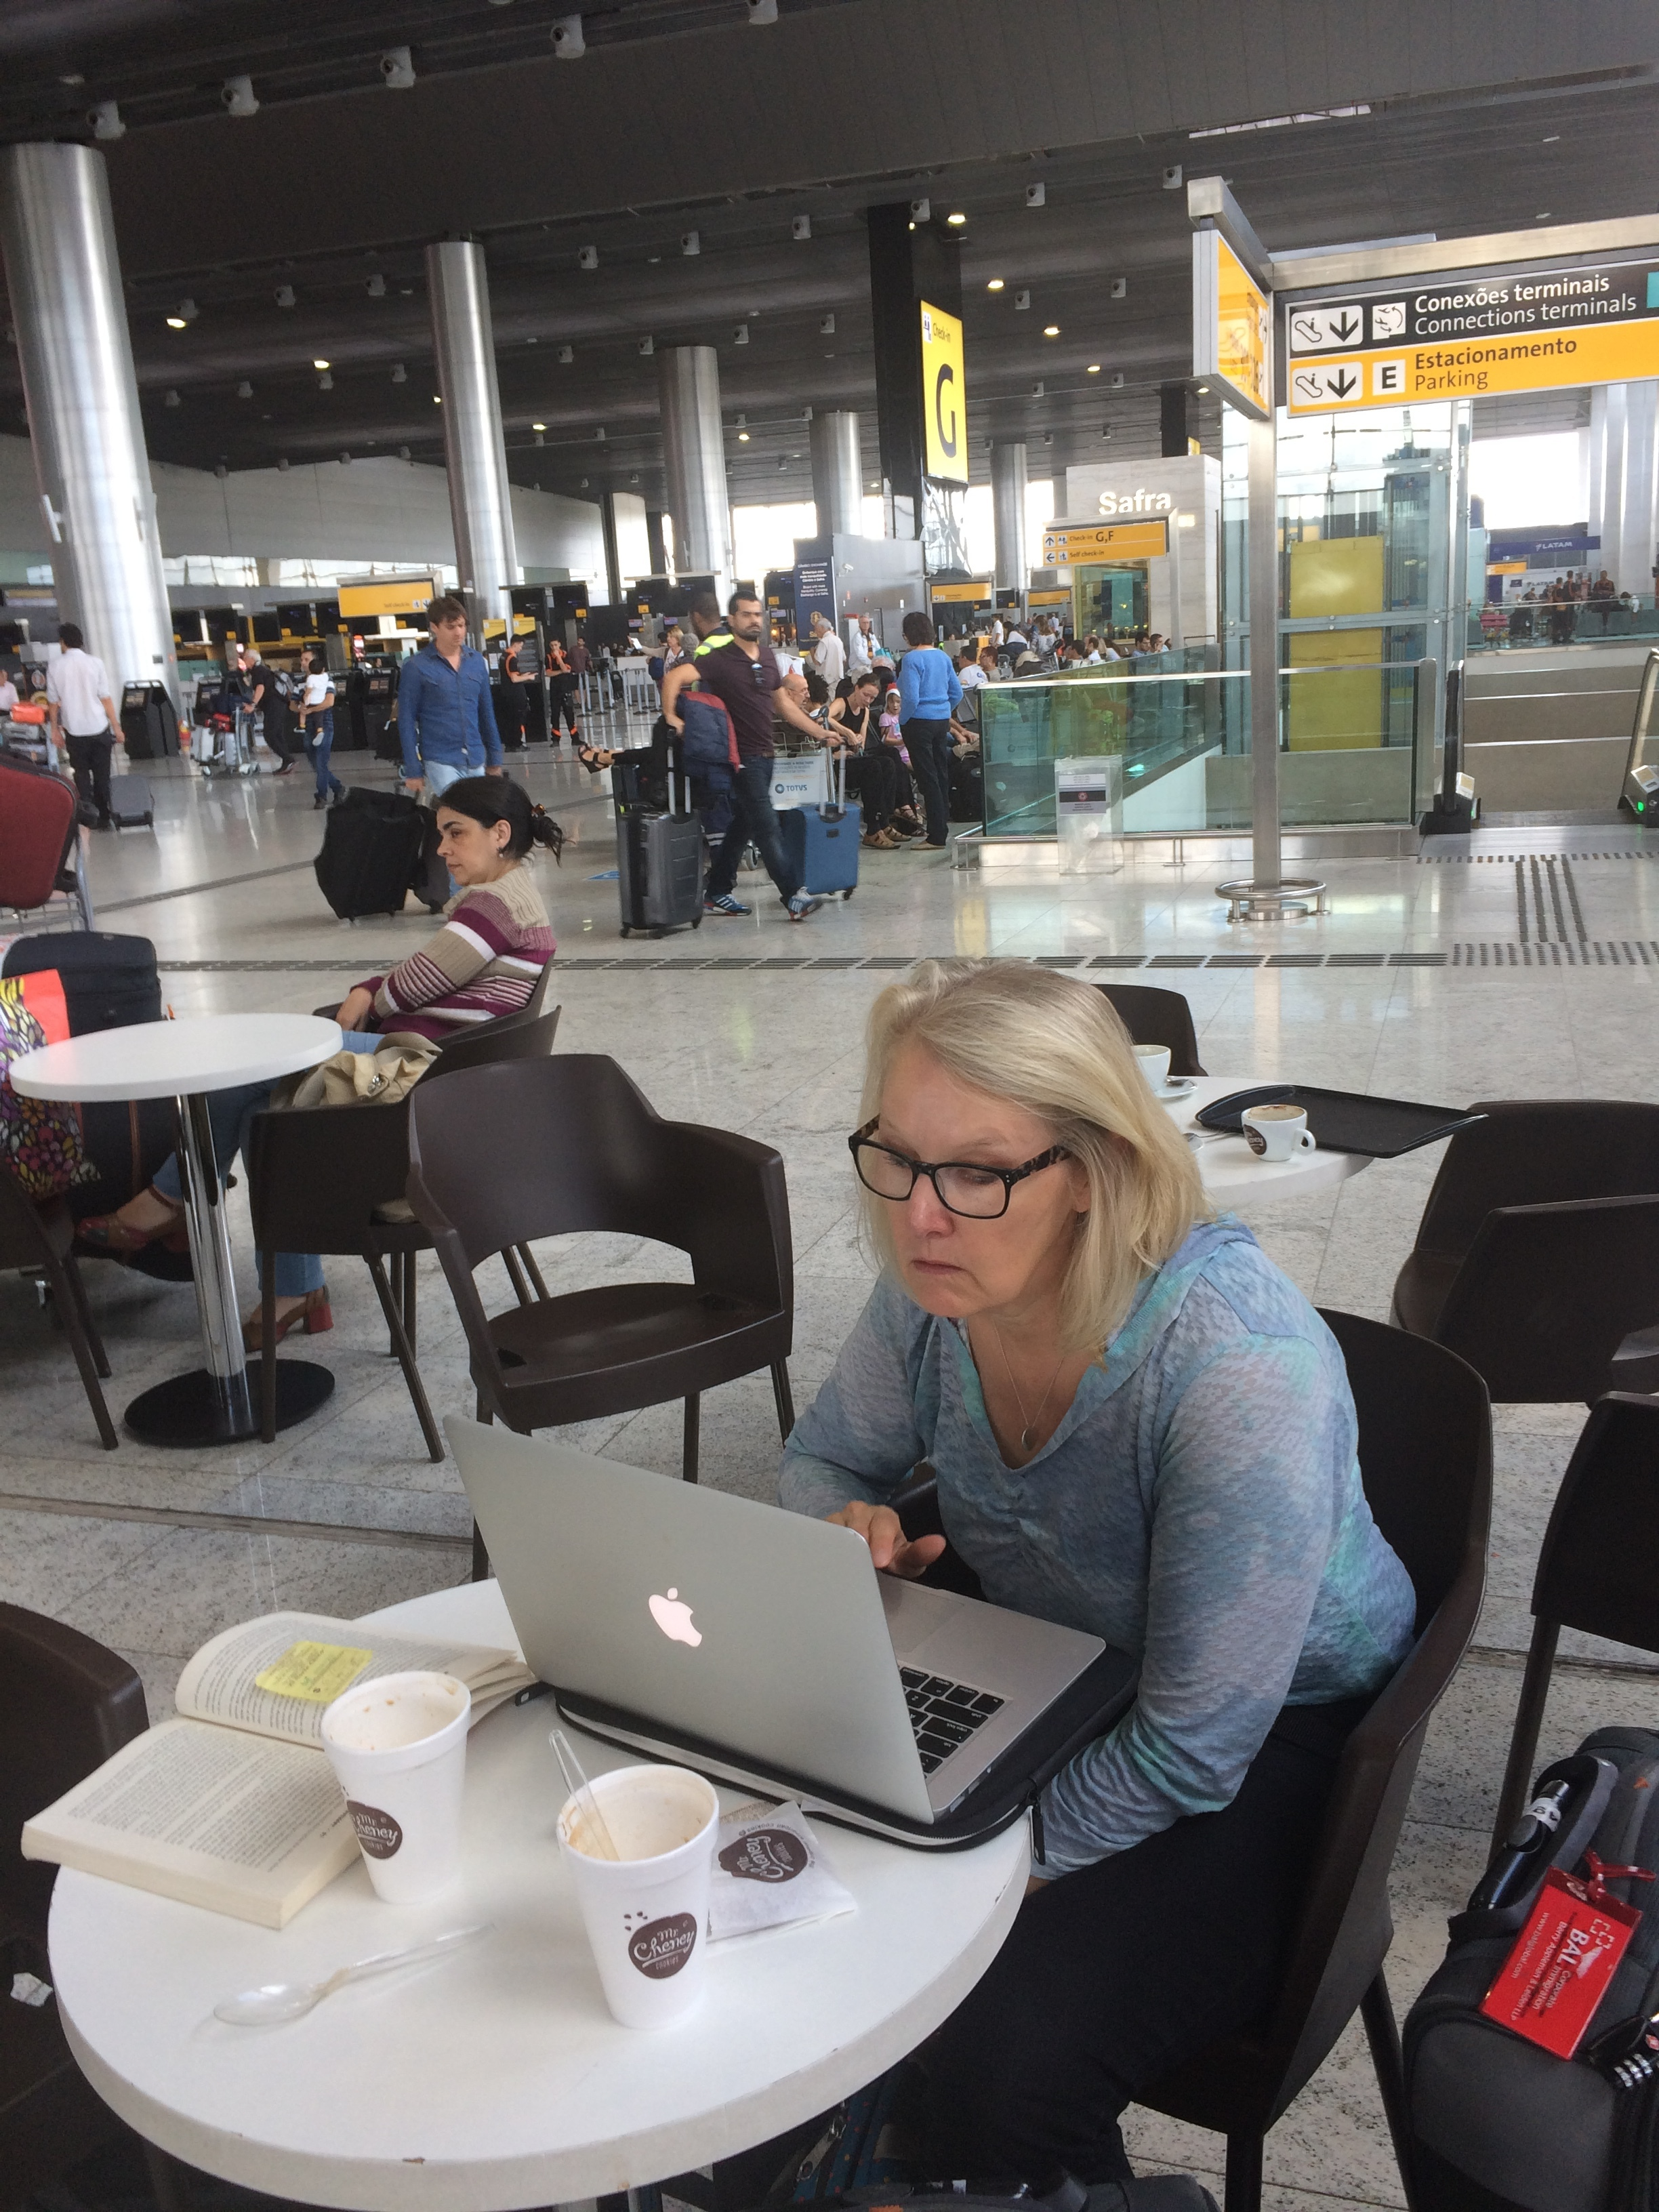 Janet working on this blog at the airport